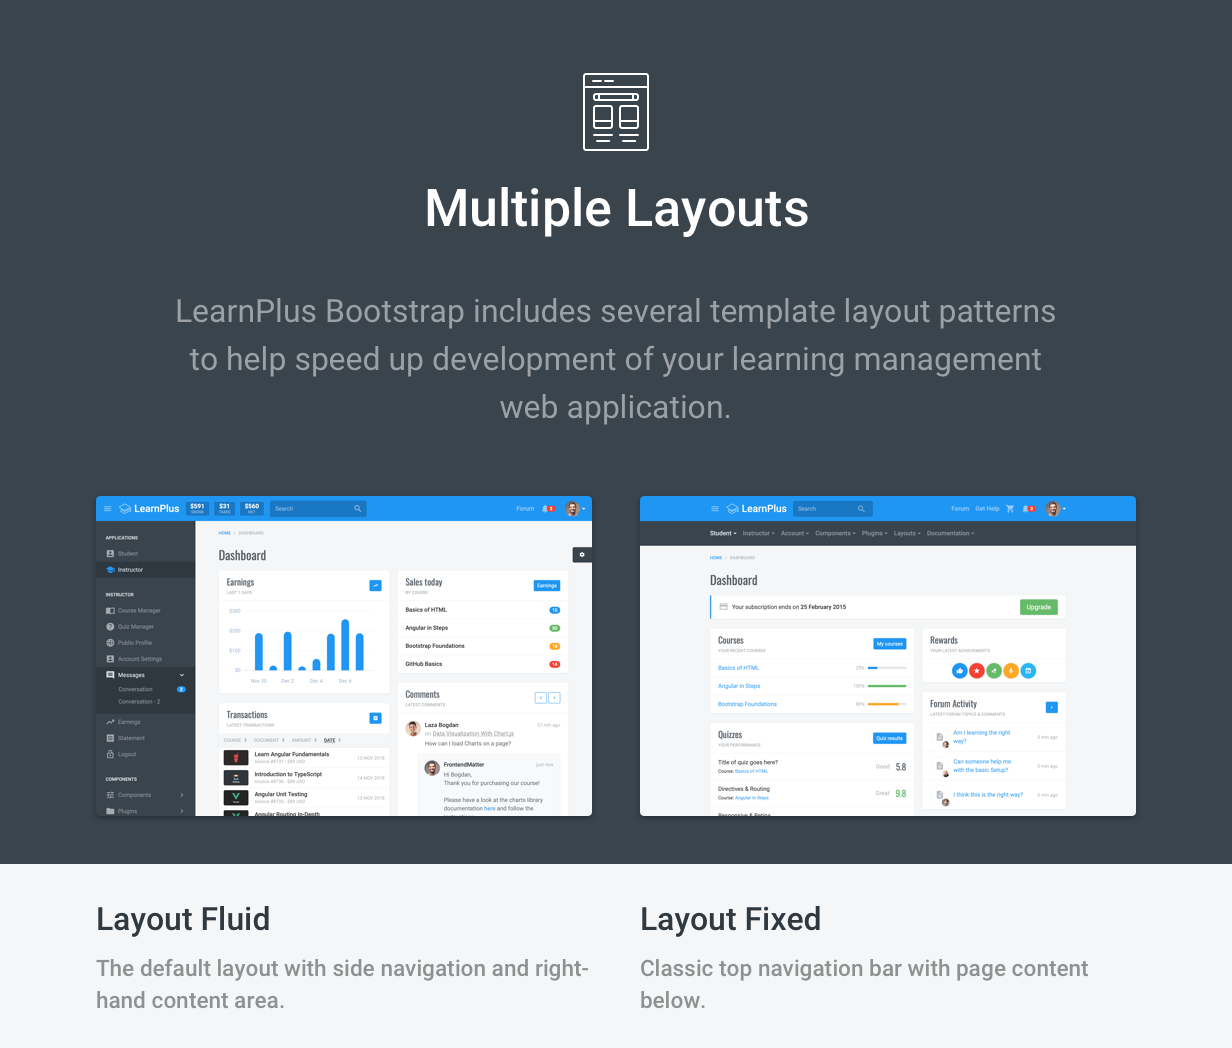 LearnPlus Bootstrap - Learning Dashboard - includes multiple layouts